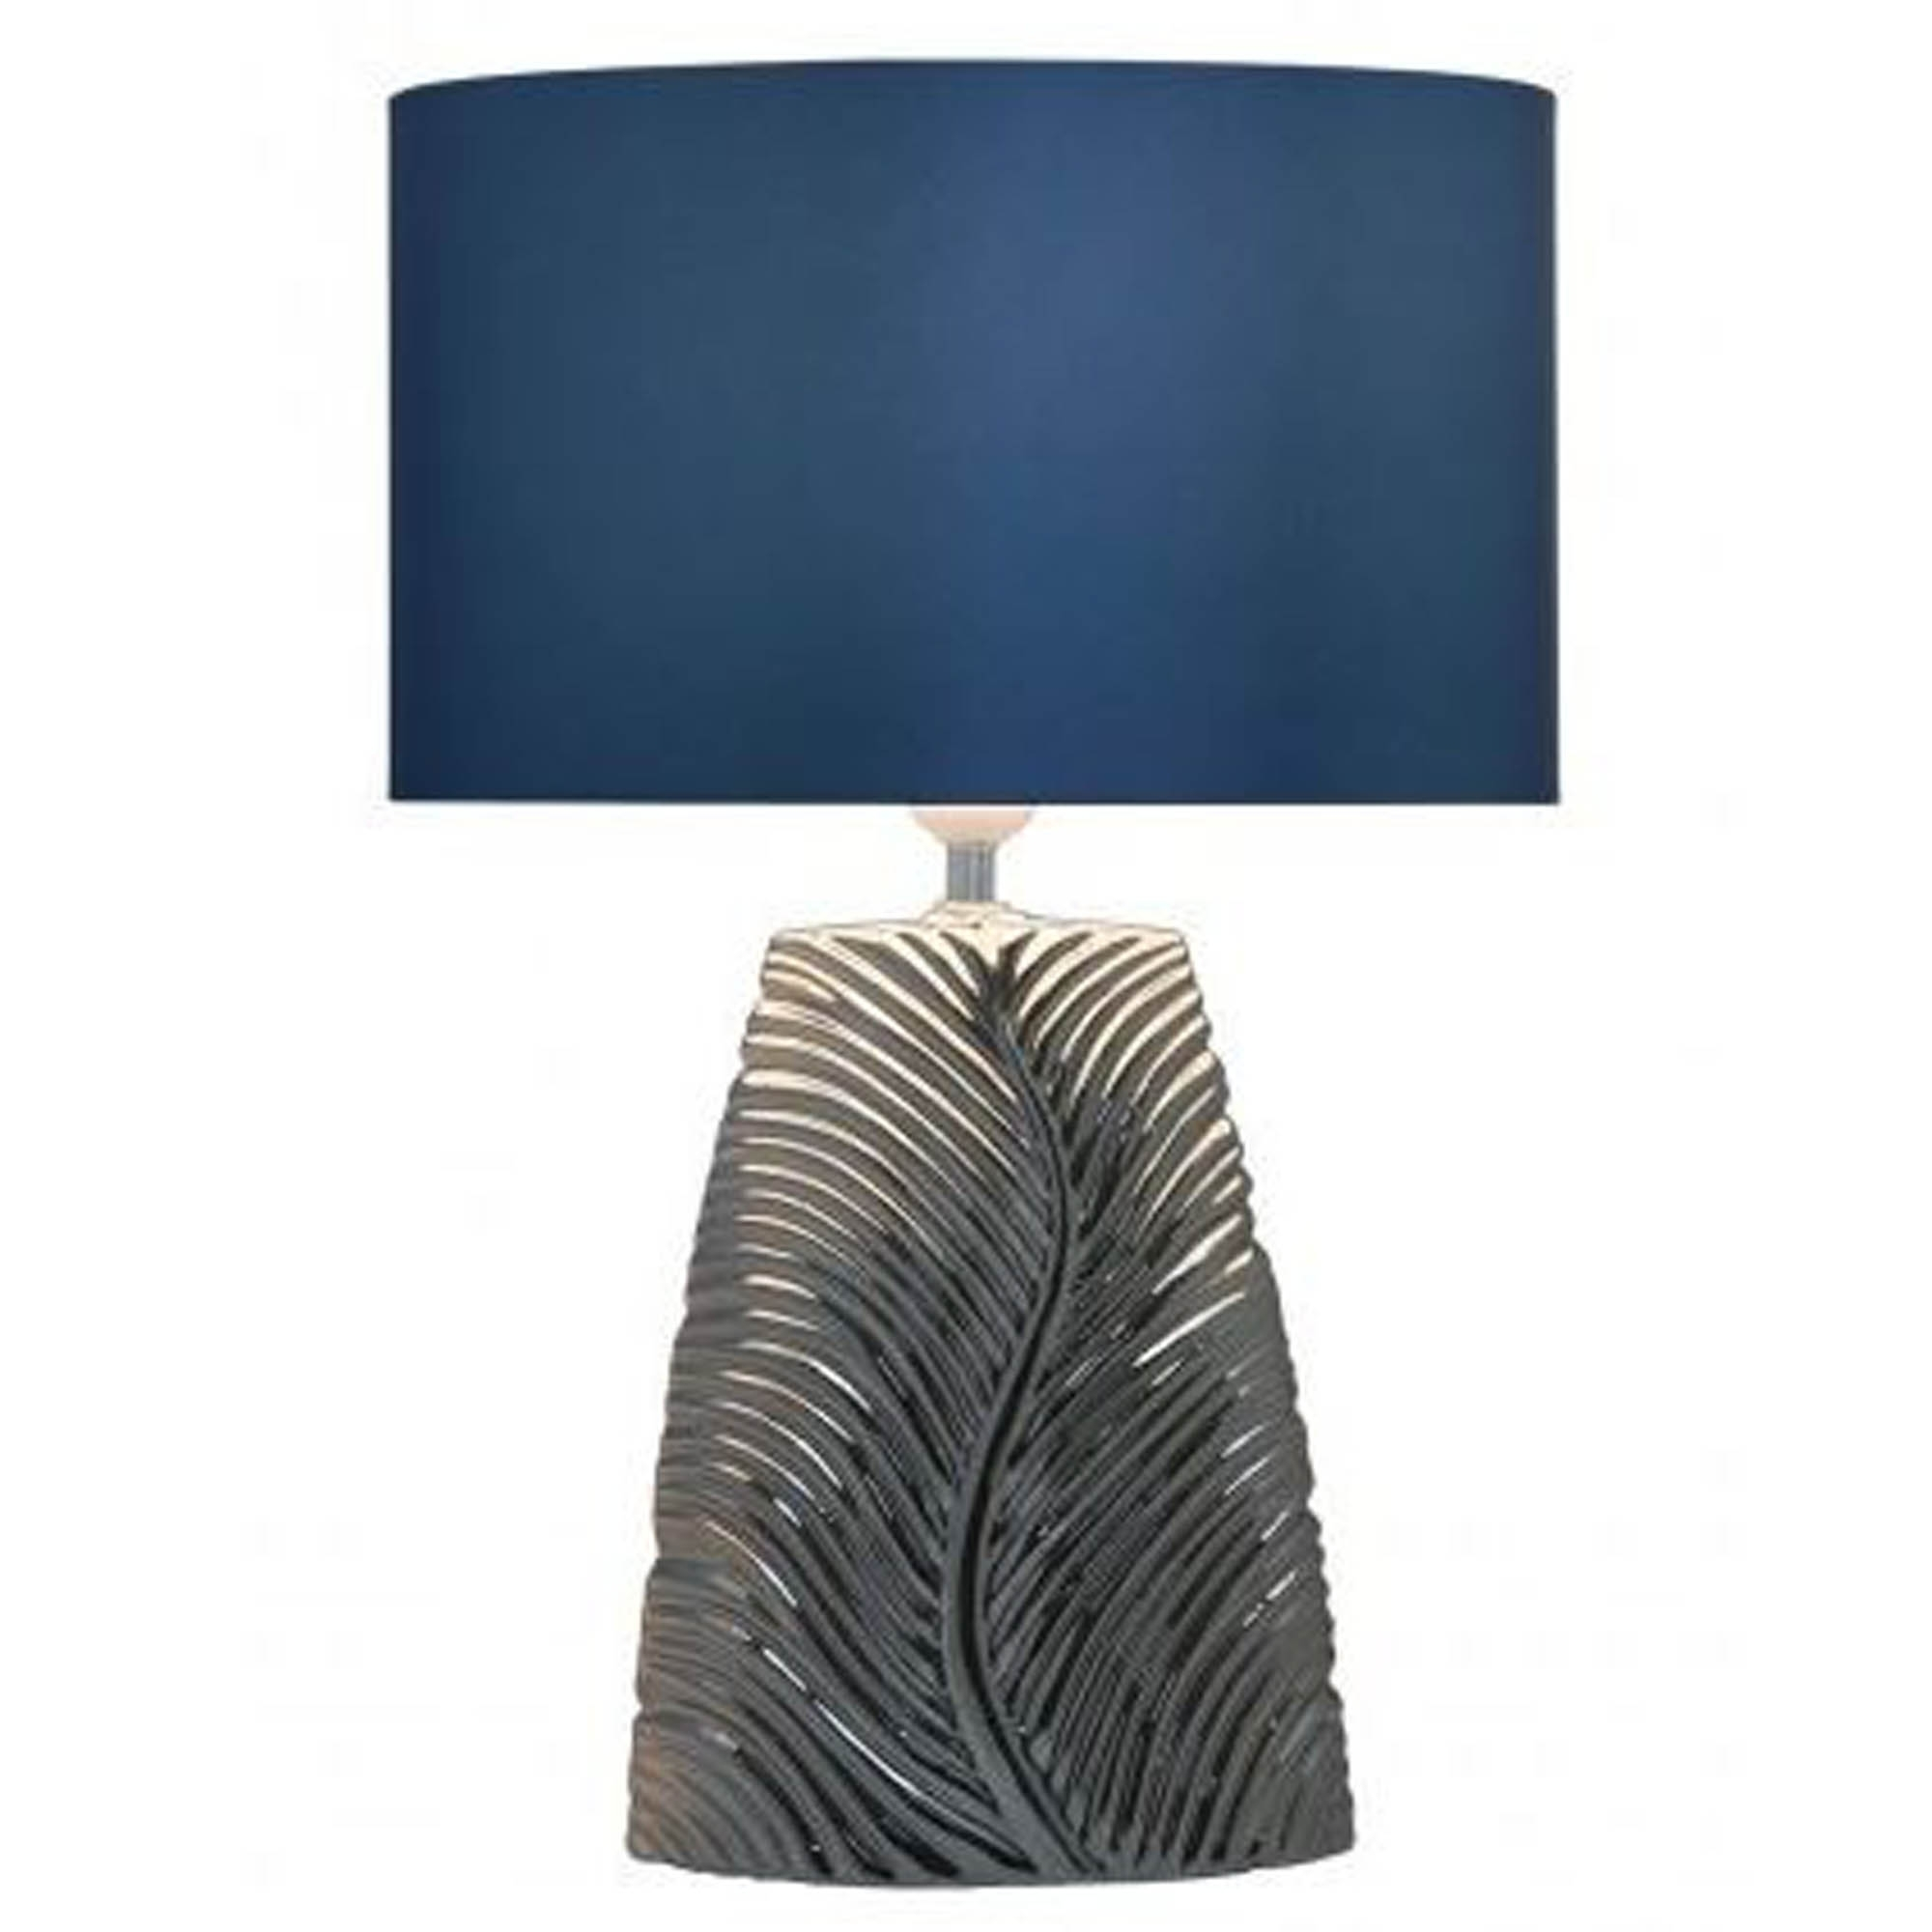 Chrome ribbed leaf table lamp lamp homesdirect365 chrome ribbed leaf table lamp aloadofball Images